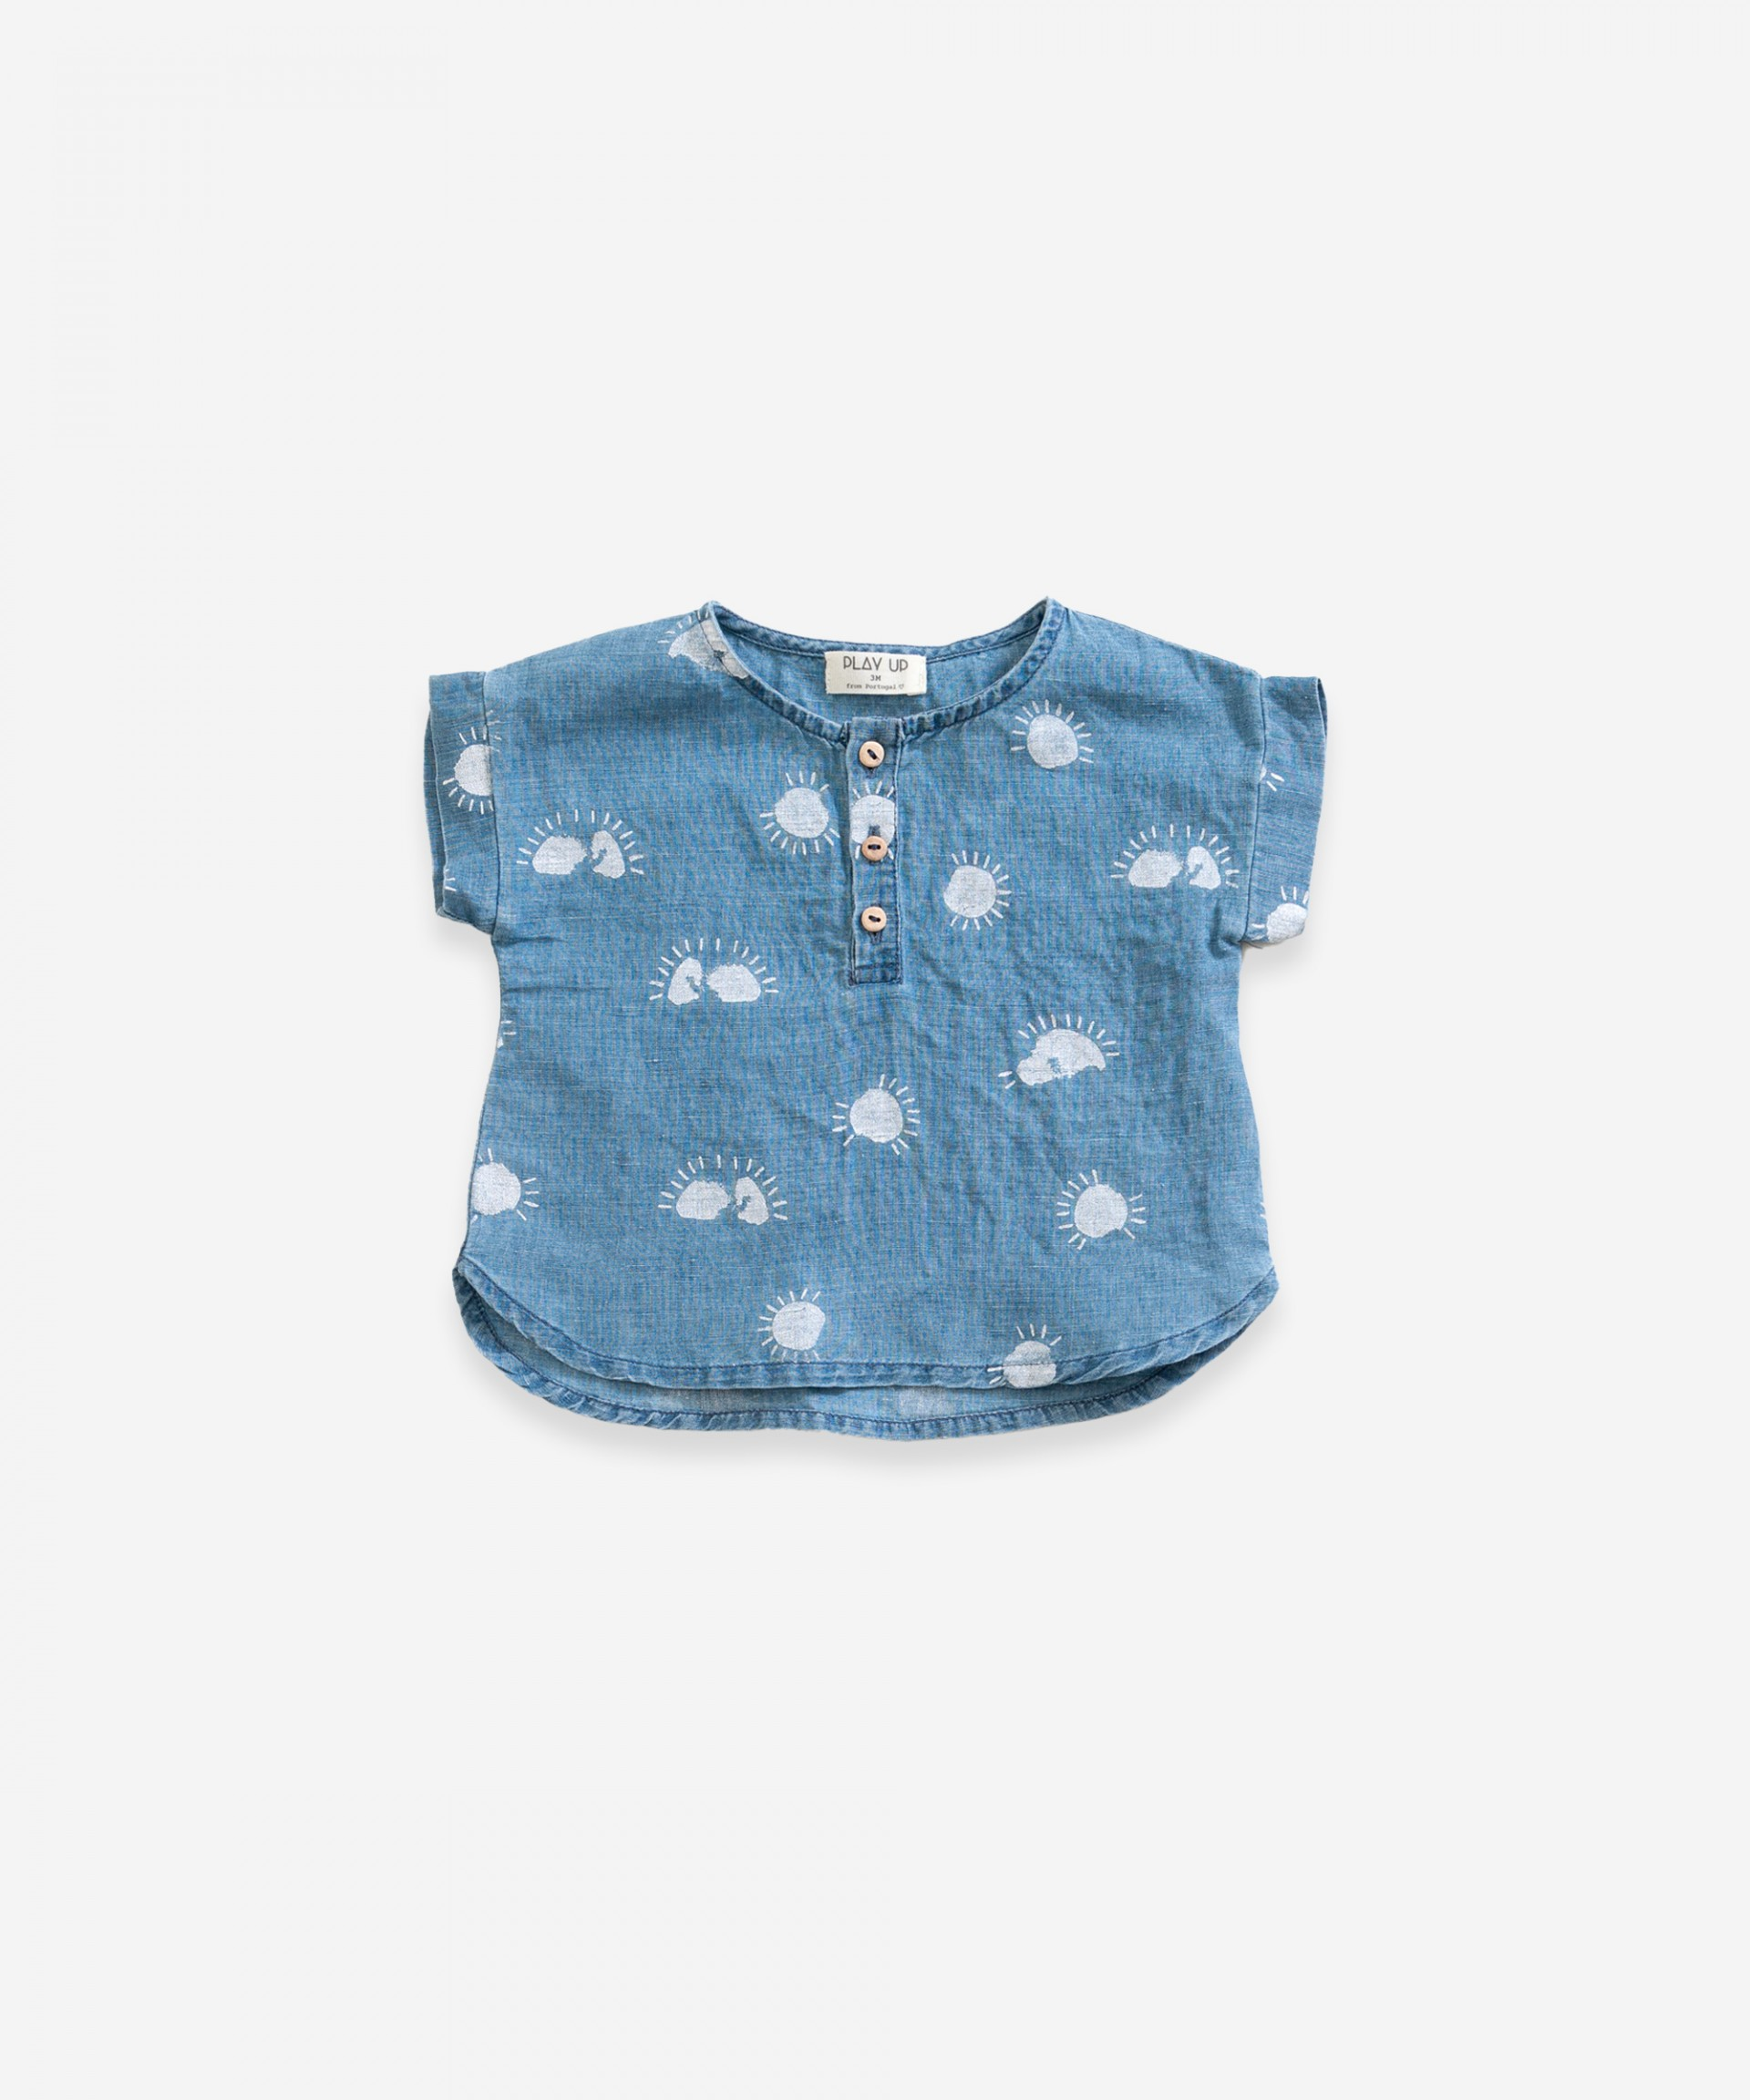 Linen shirt with print | Weaving